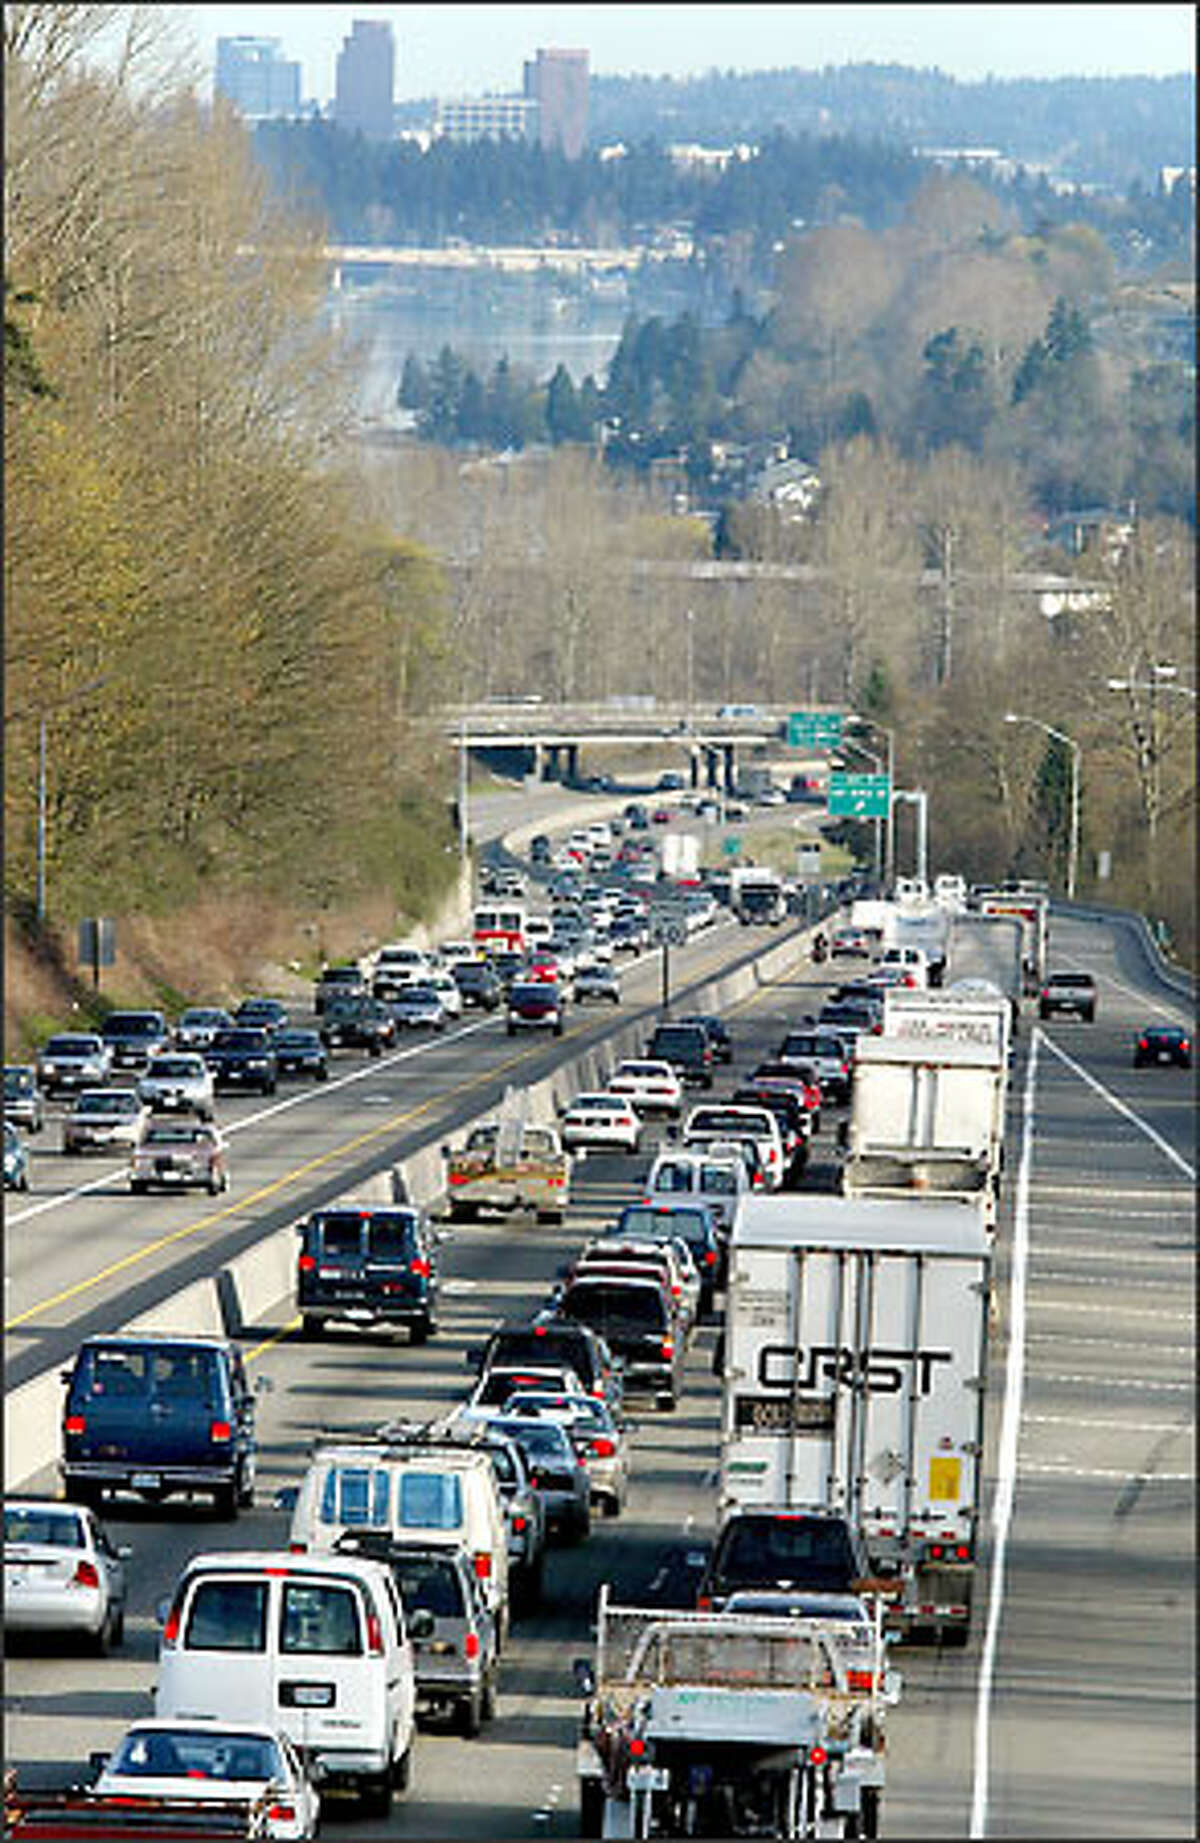 An all-too-familiar view for Eastside drivers is traffic backed up on Interstate 405, here heading northbound.